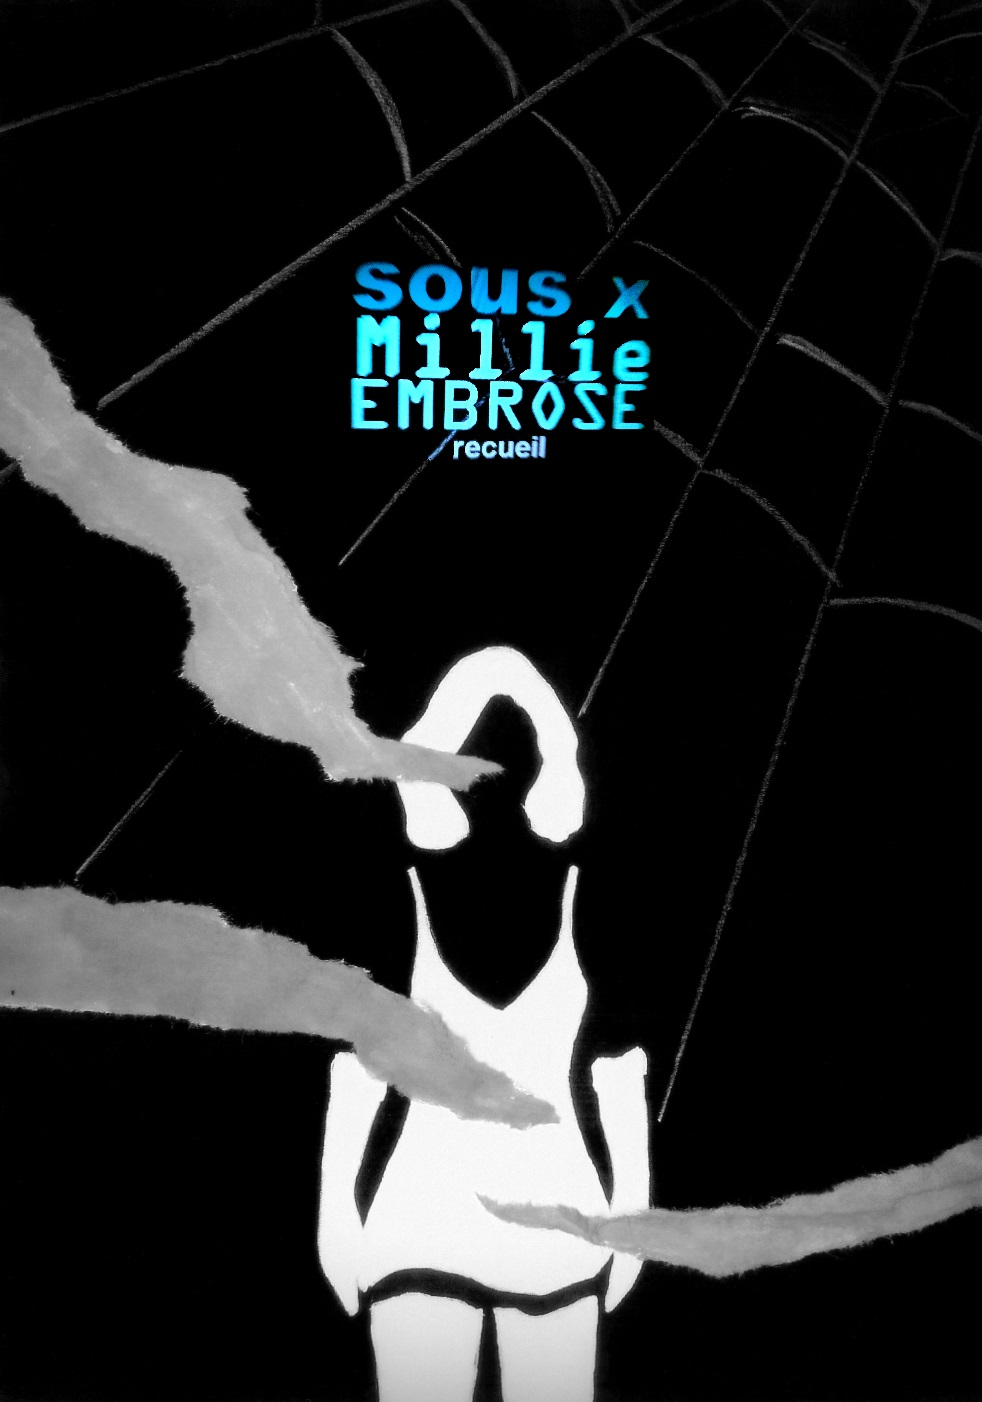 sous x - millie embrose recueil (couverture-alternative)